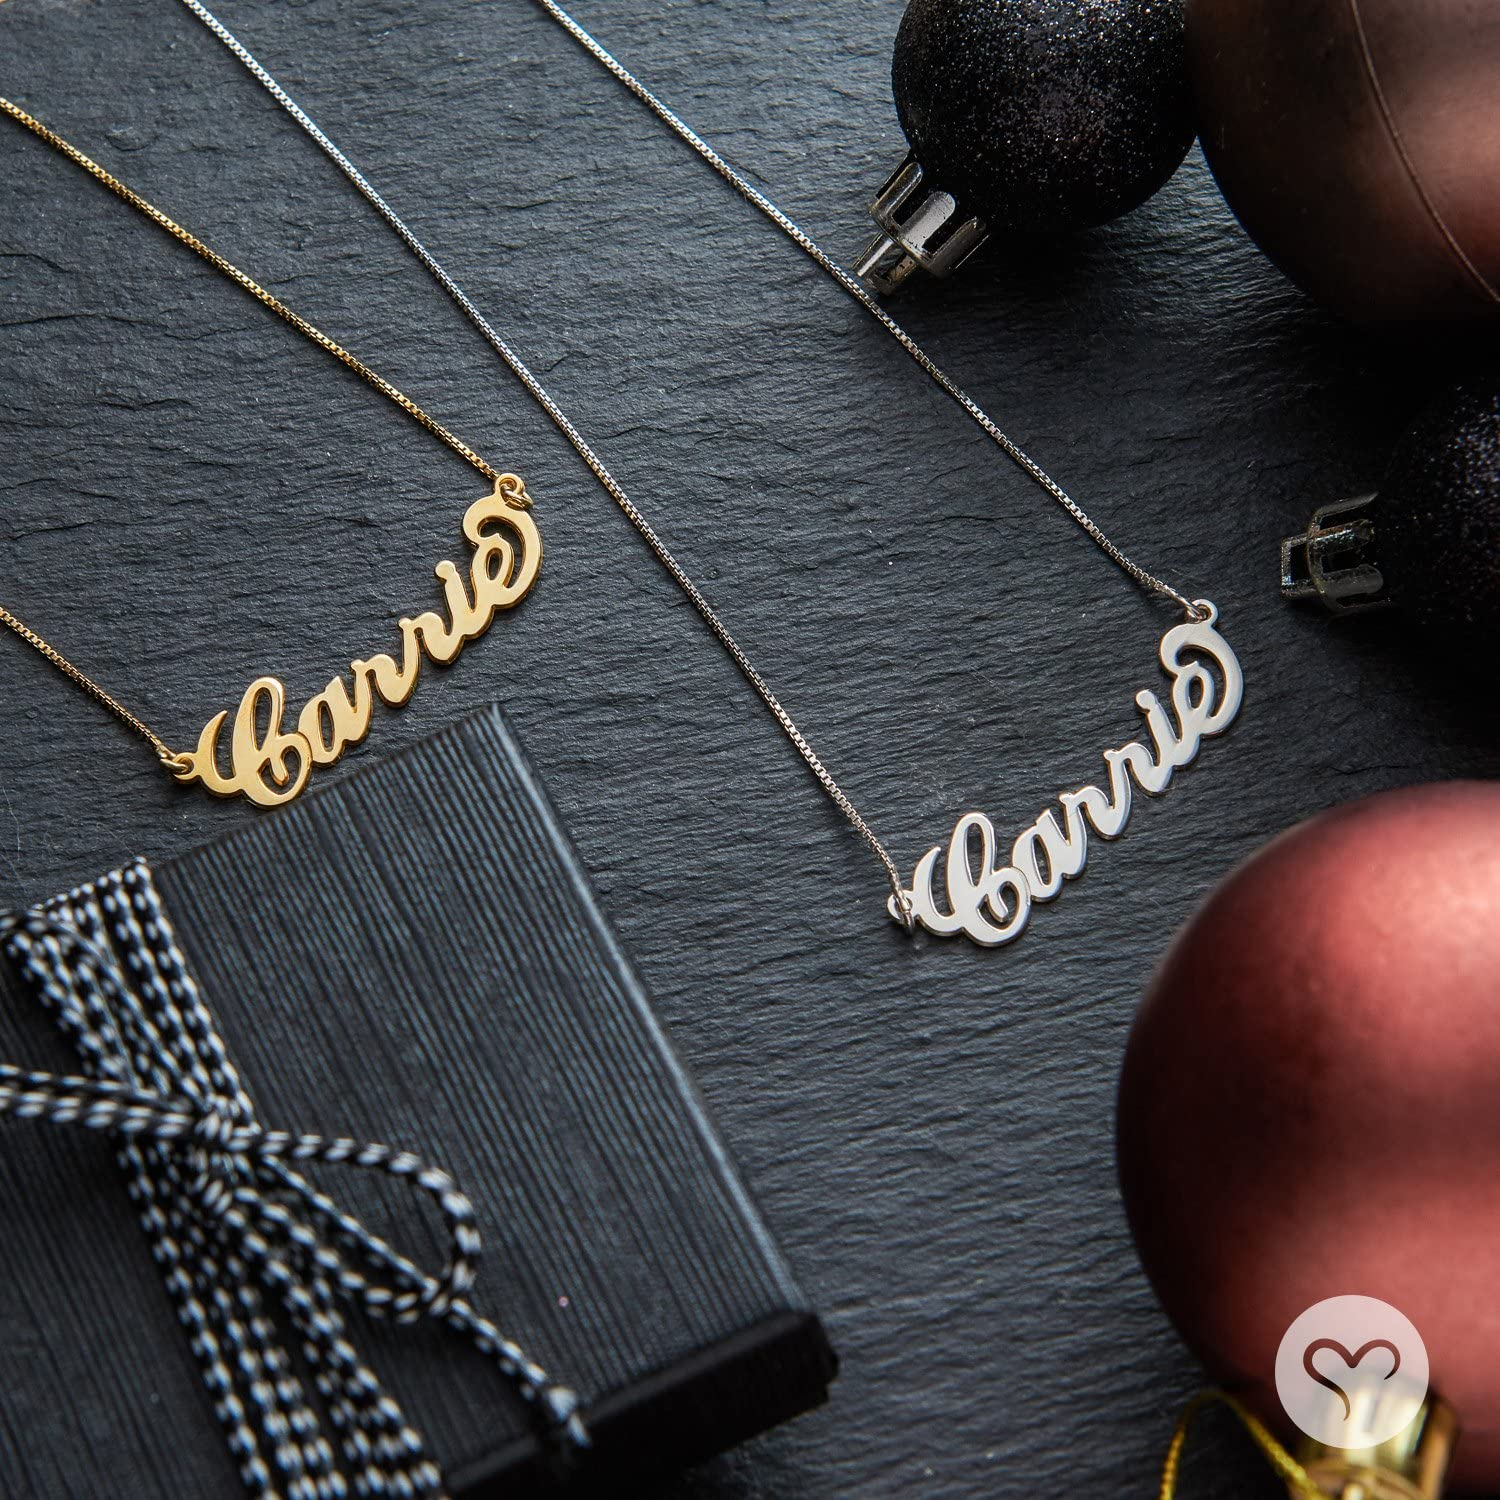 18k Gold-Plated Sterling Silver Personzlized Carrie Style Name Necklace Custom Made with any name